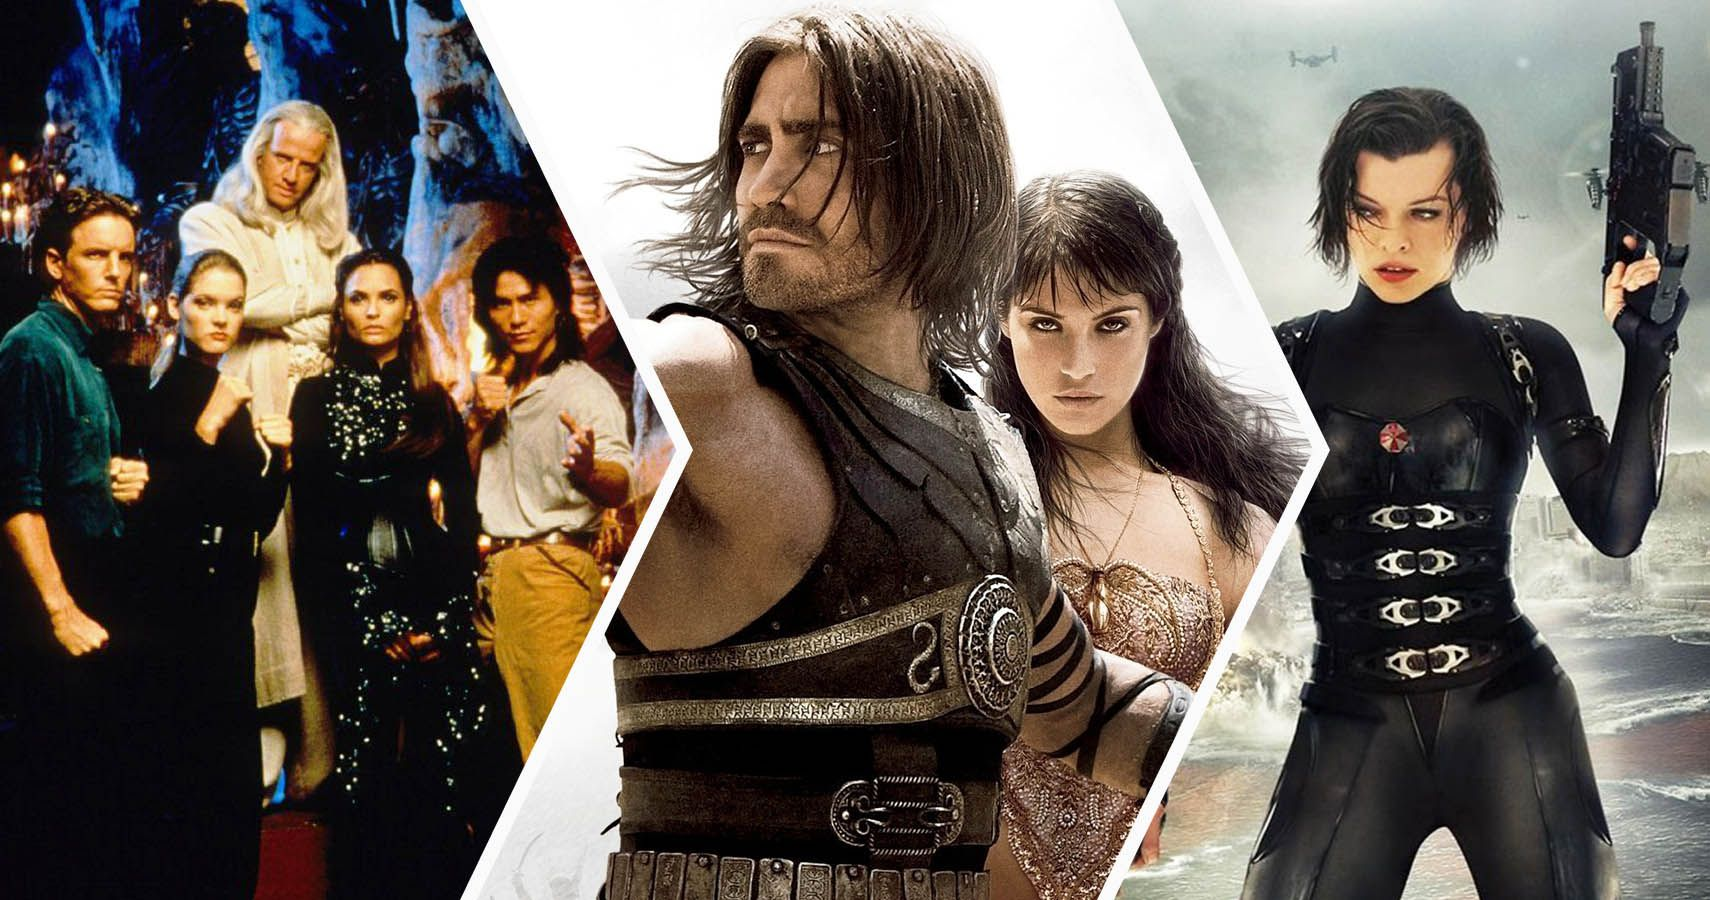 18 Best Video Game Movies According To Rotten Tomatoes And 2